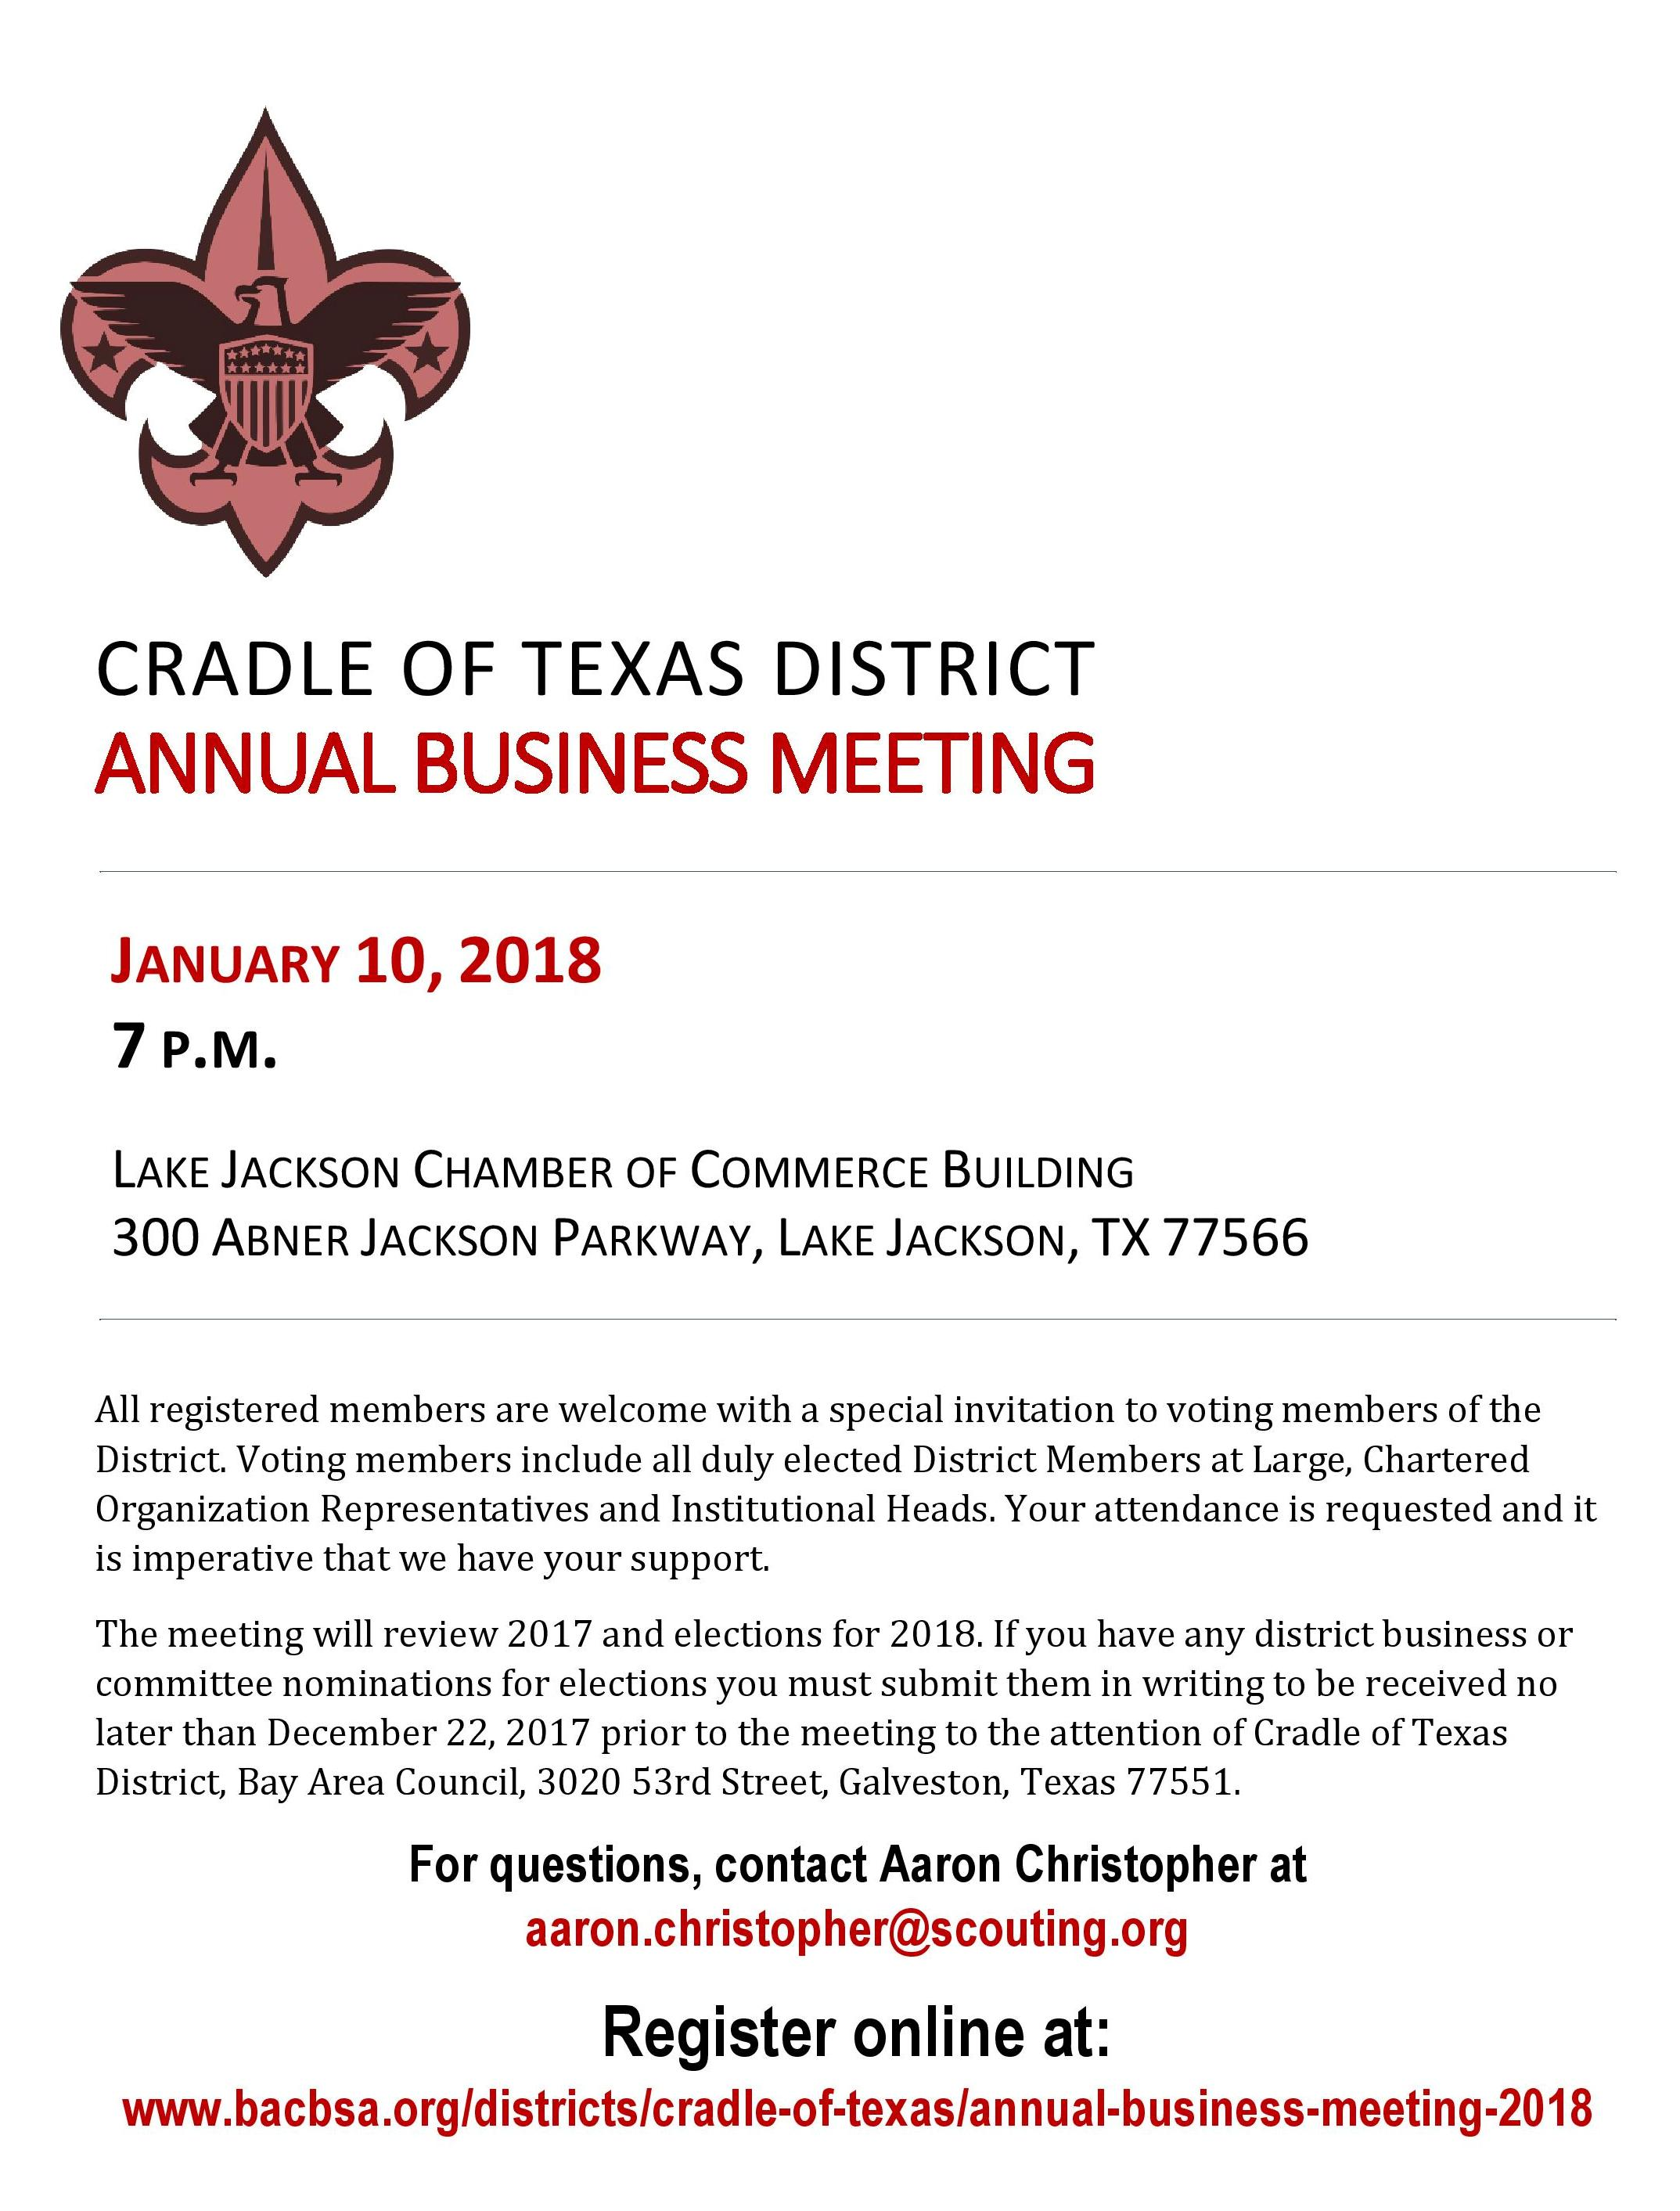 Cradle of Texas Annual Business Meeting